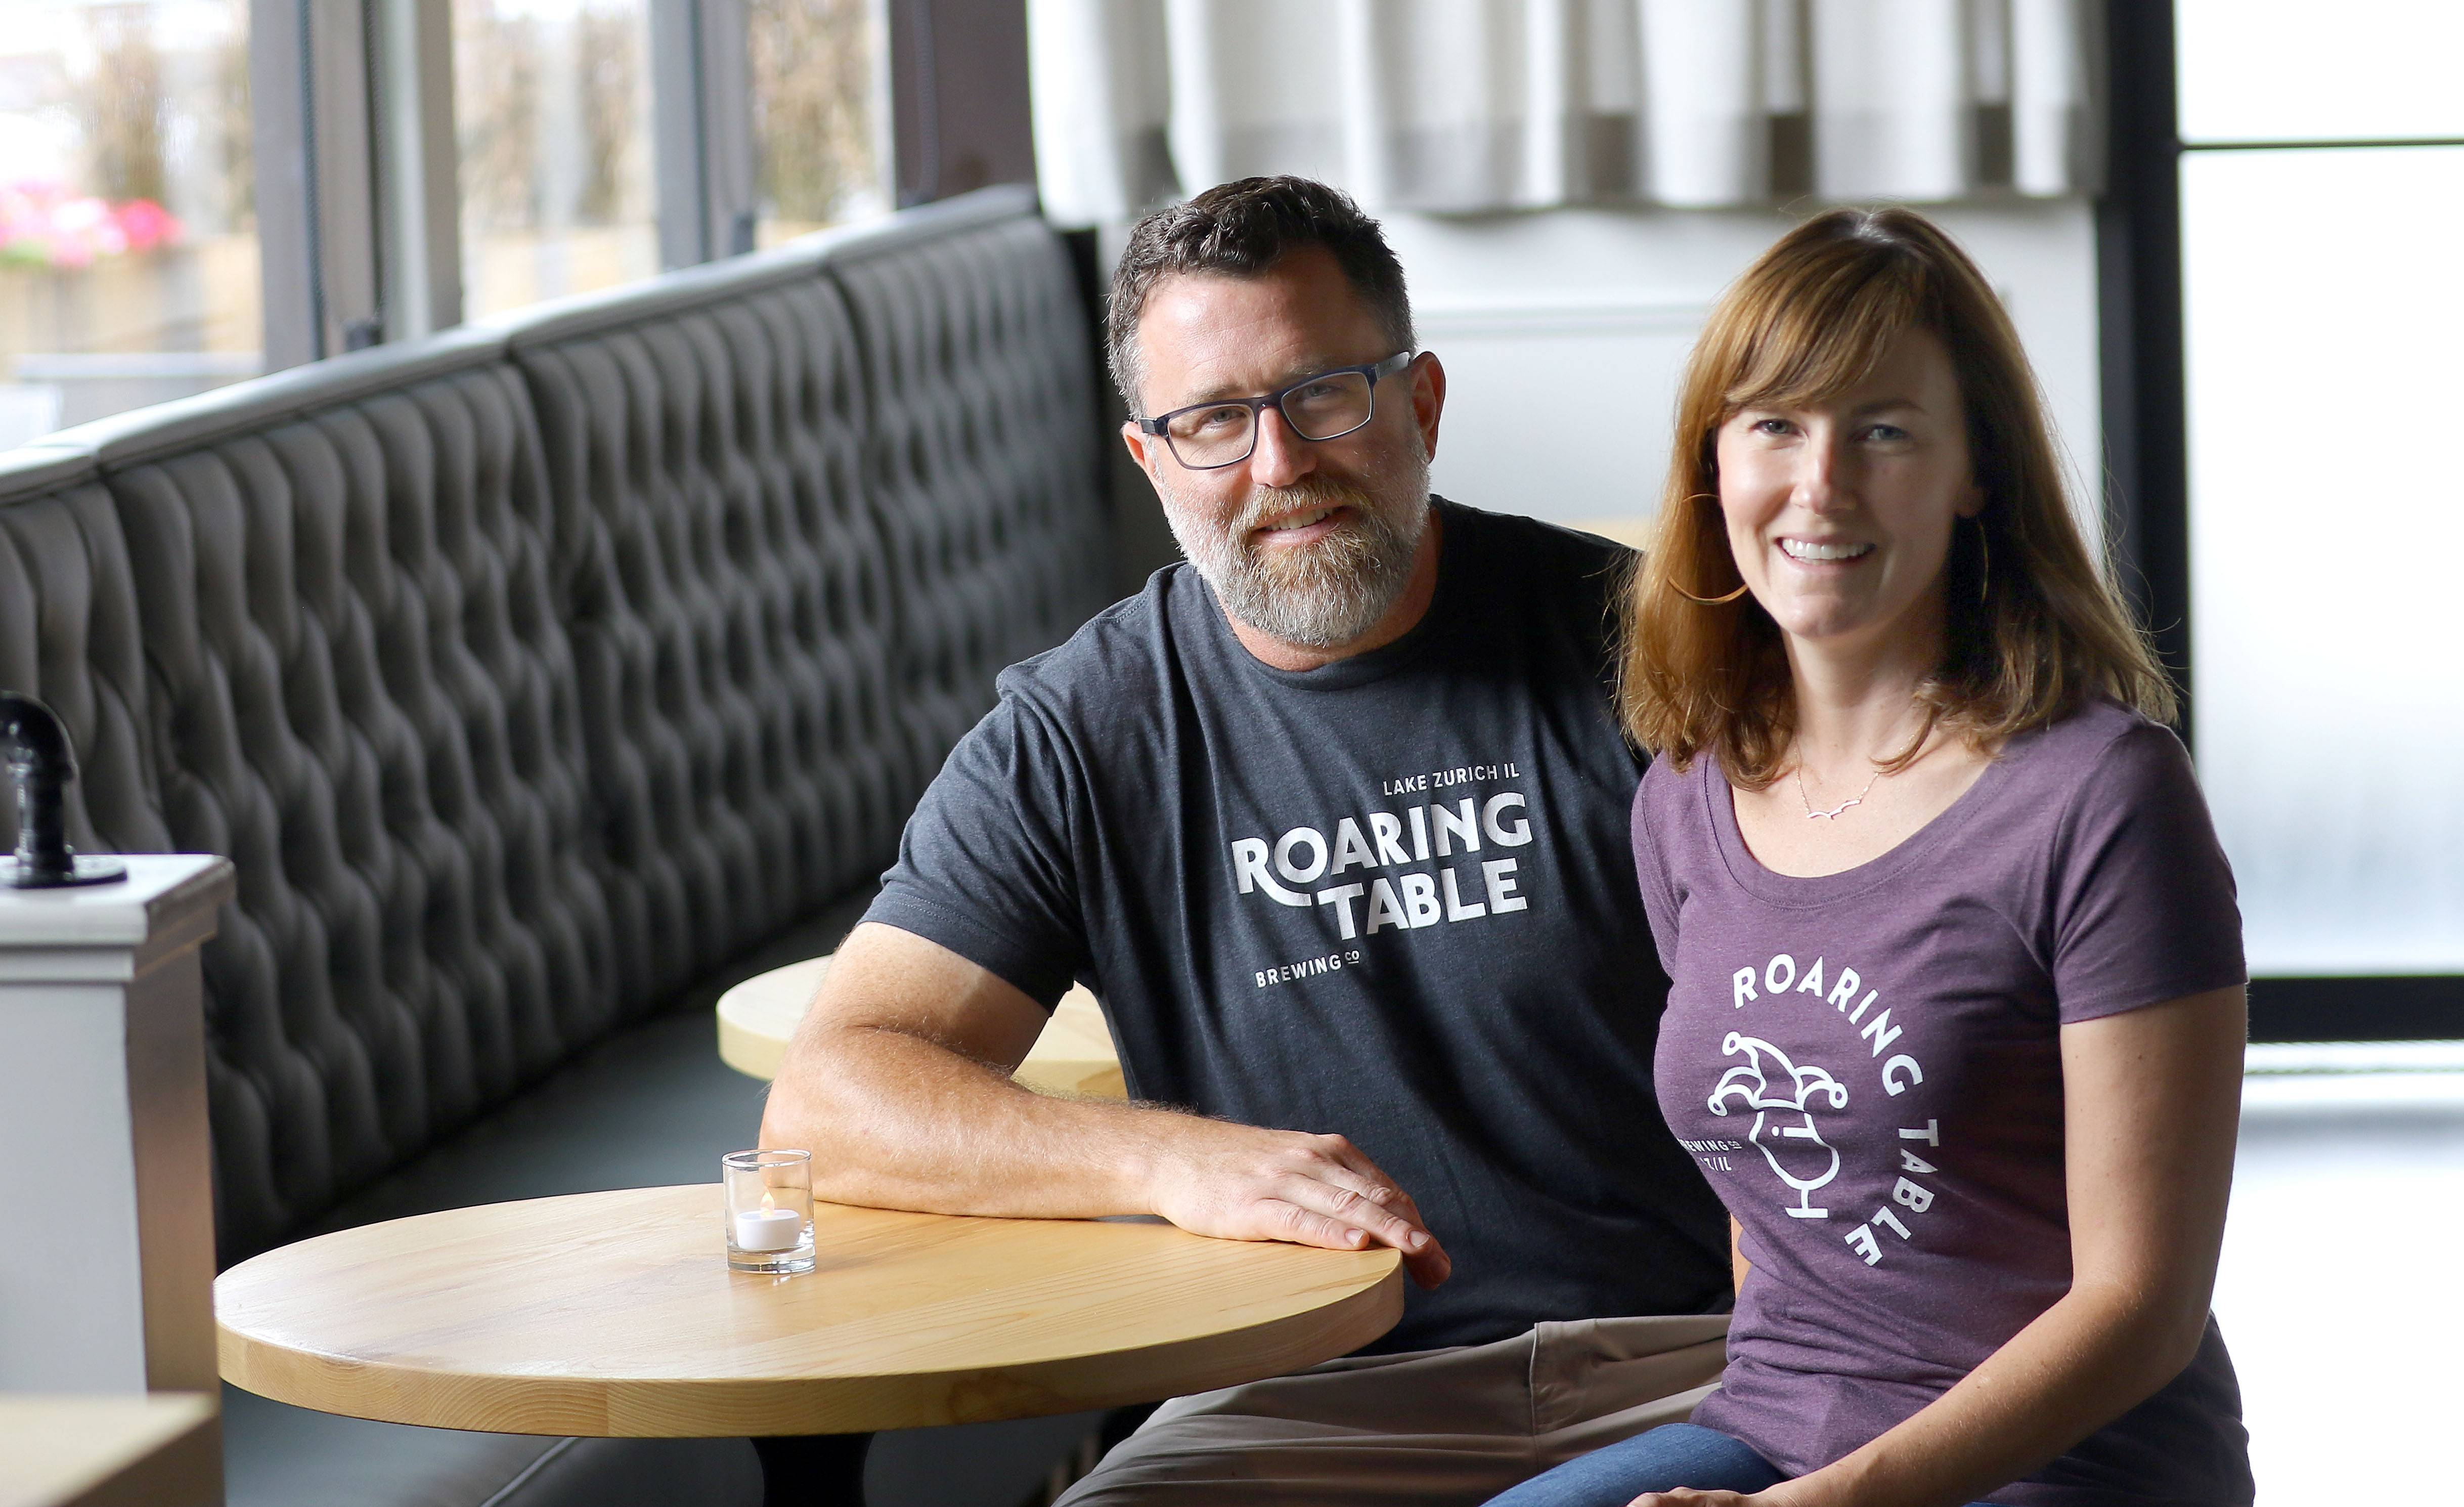 The husband-and-wife team of Lane Fearing and Beth May are the owners of Roaring Table Brewery in Lake Zurich.